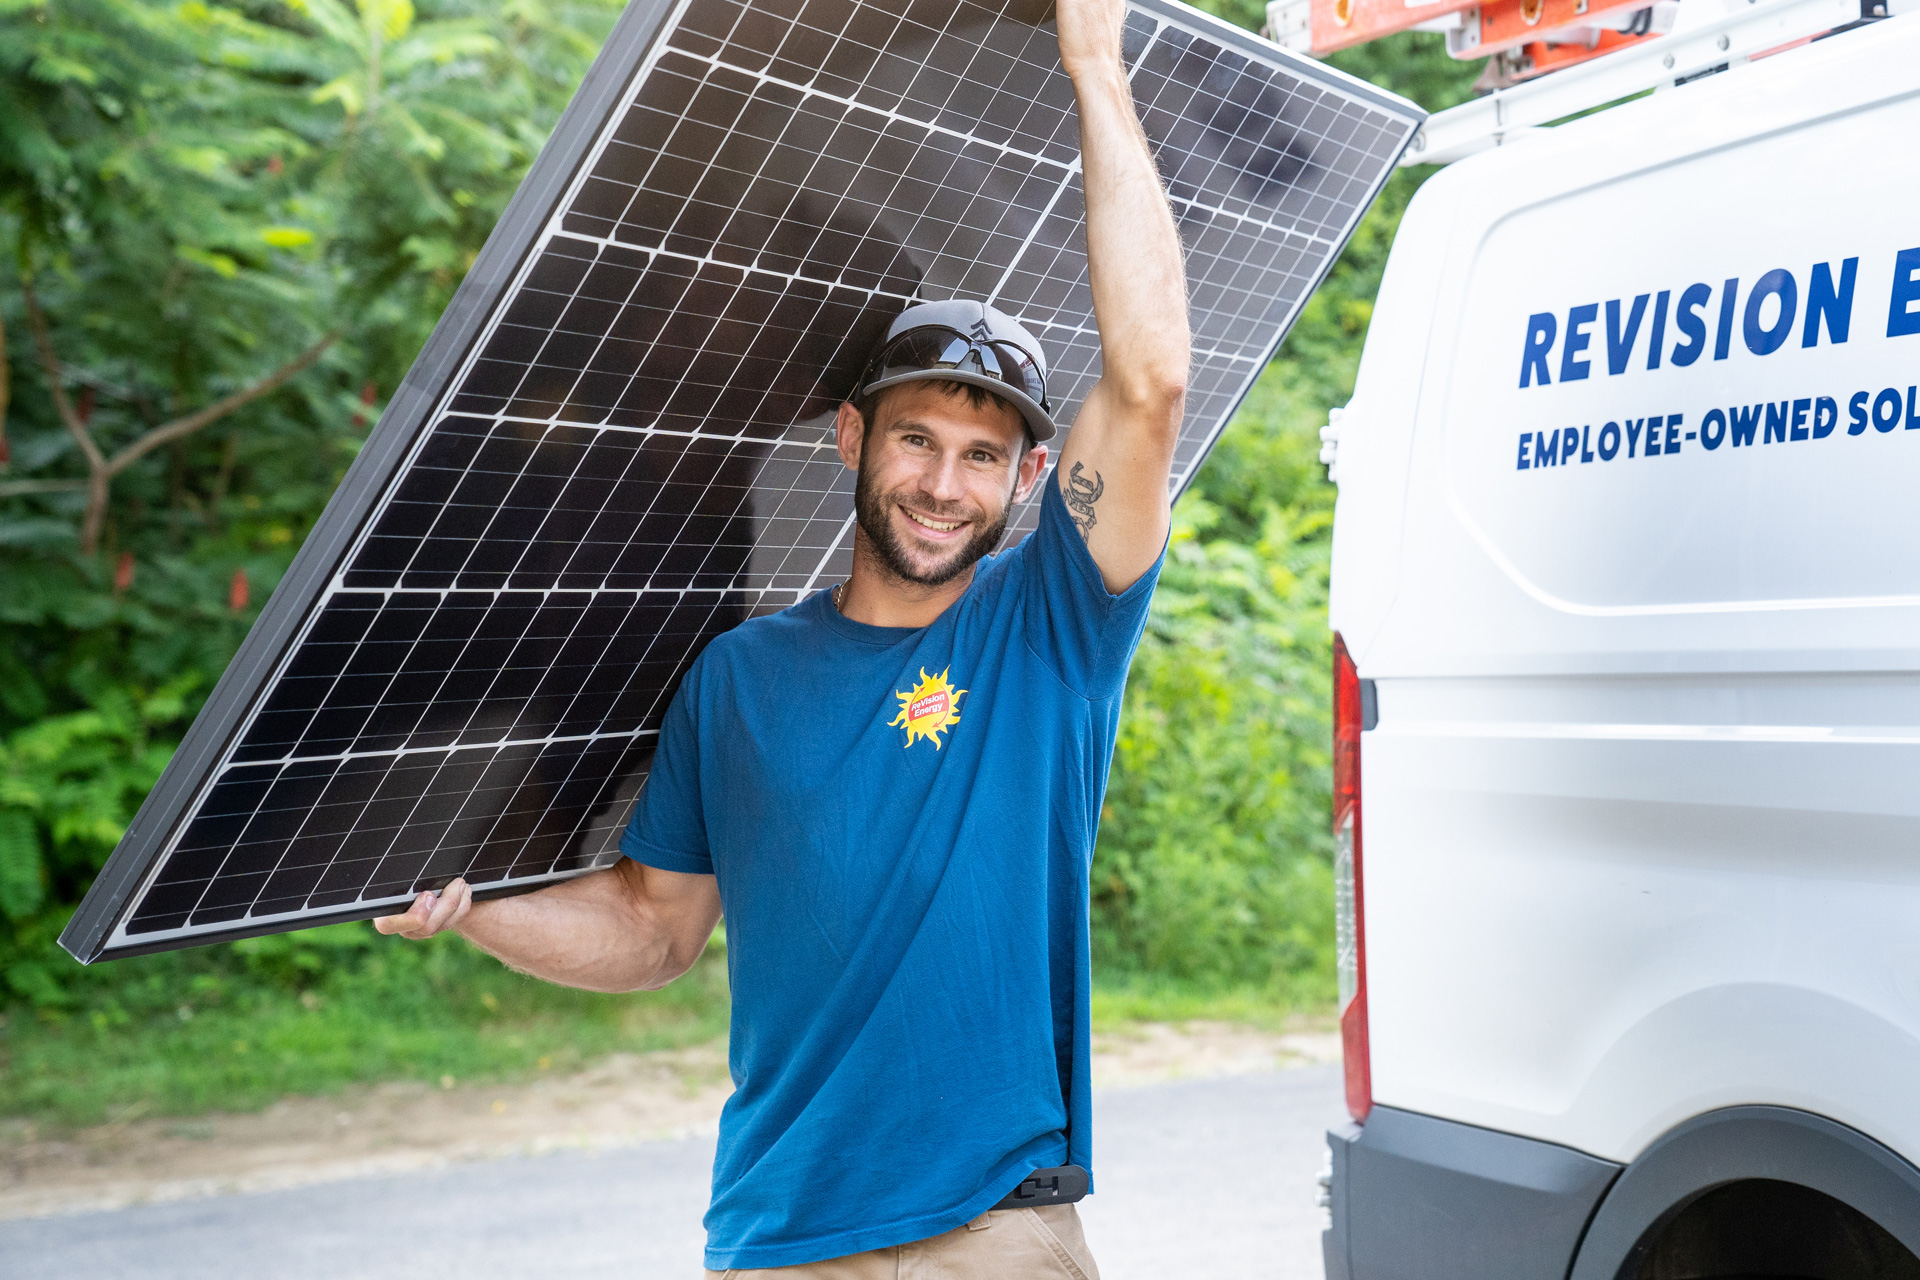 Worker carrying a solar panel